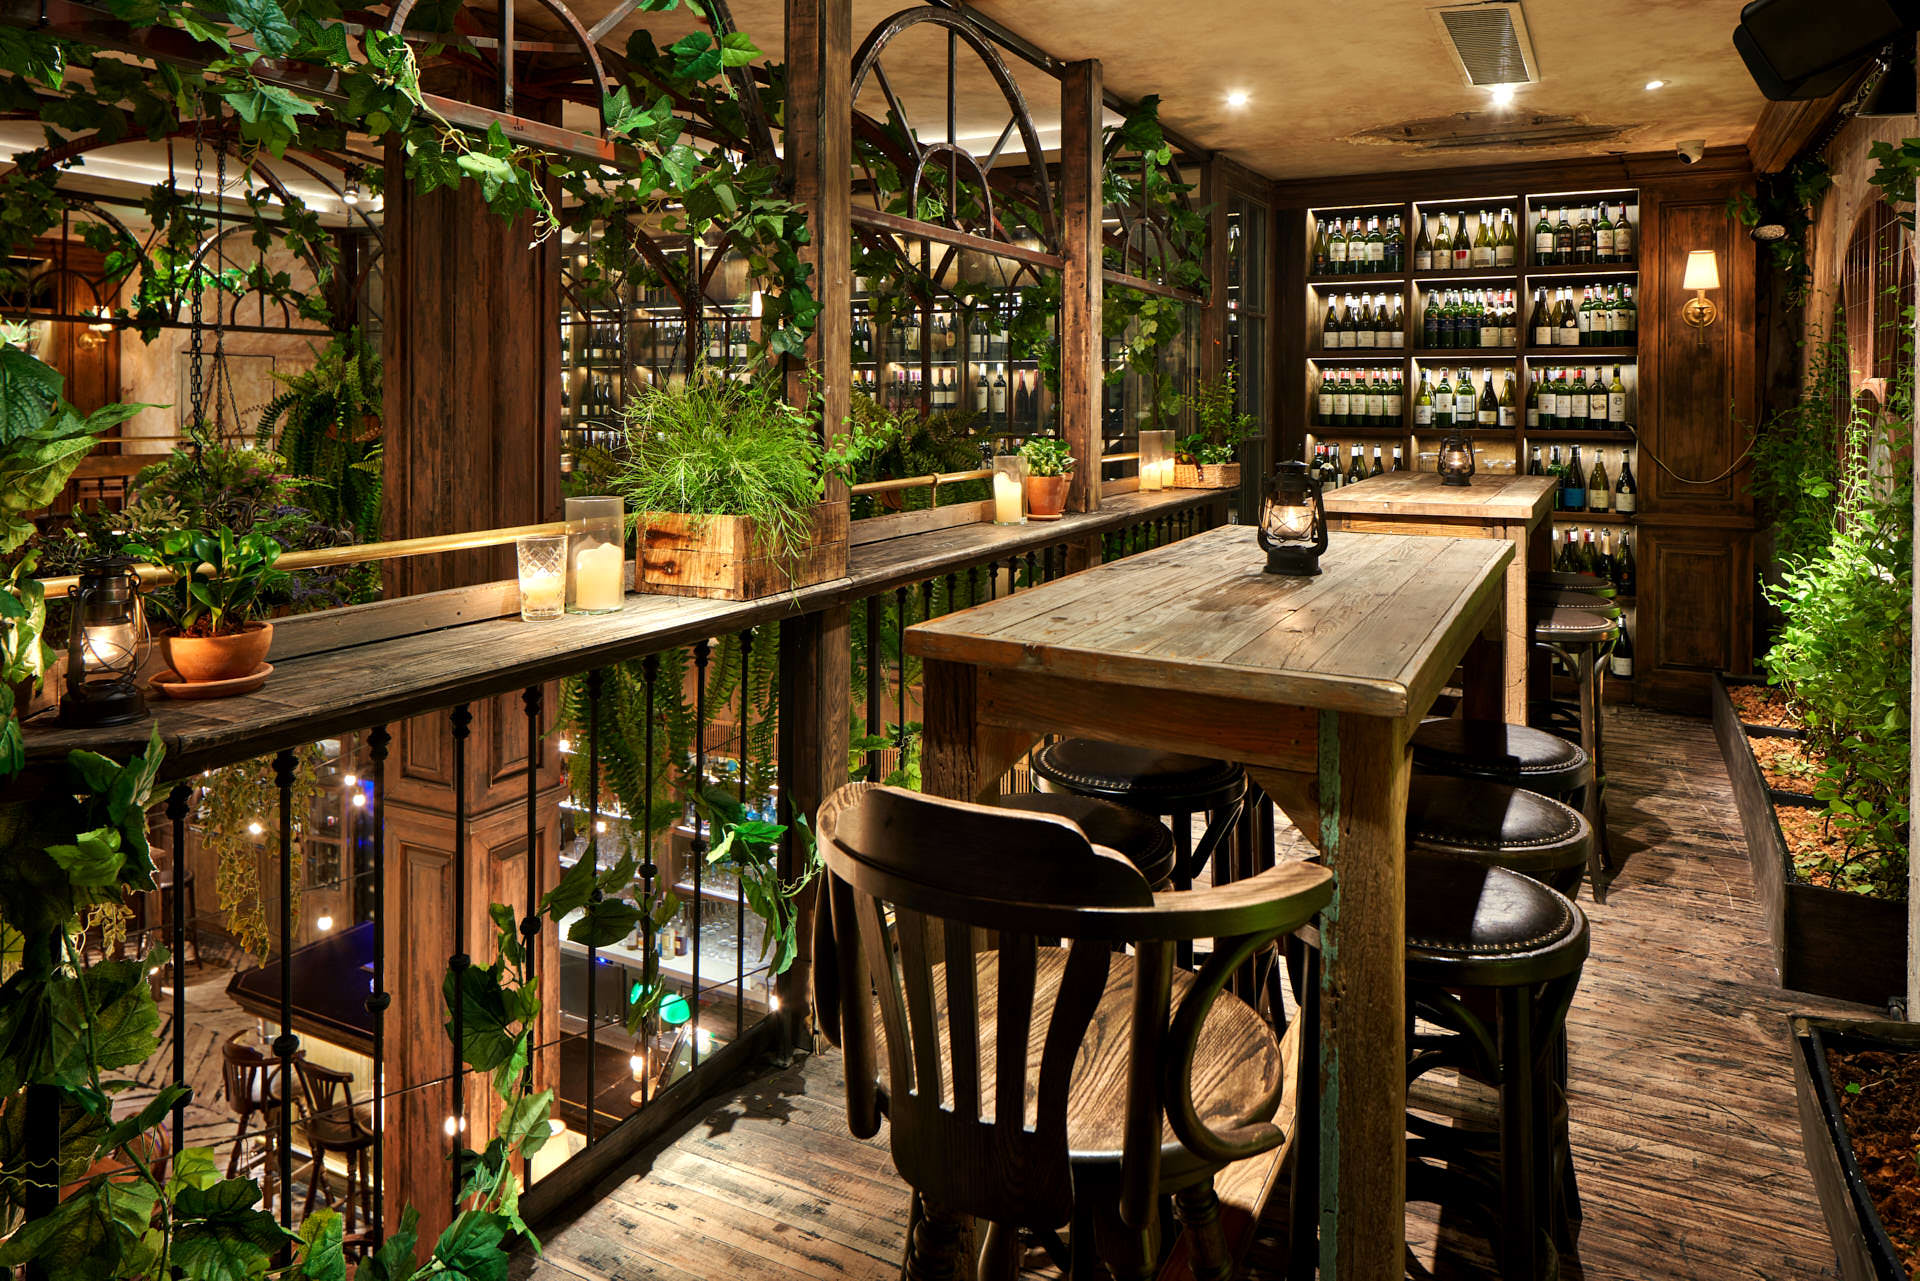 Architectural photography of the upstairs wine concourse area with vintage chairs and lanterns with candles